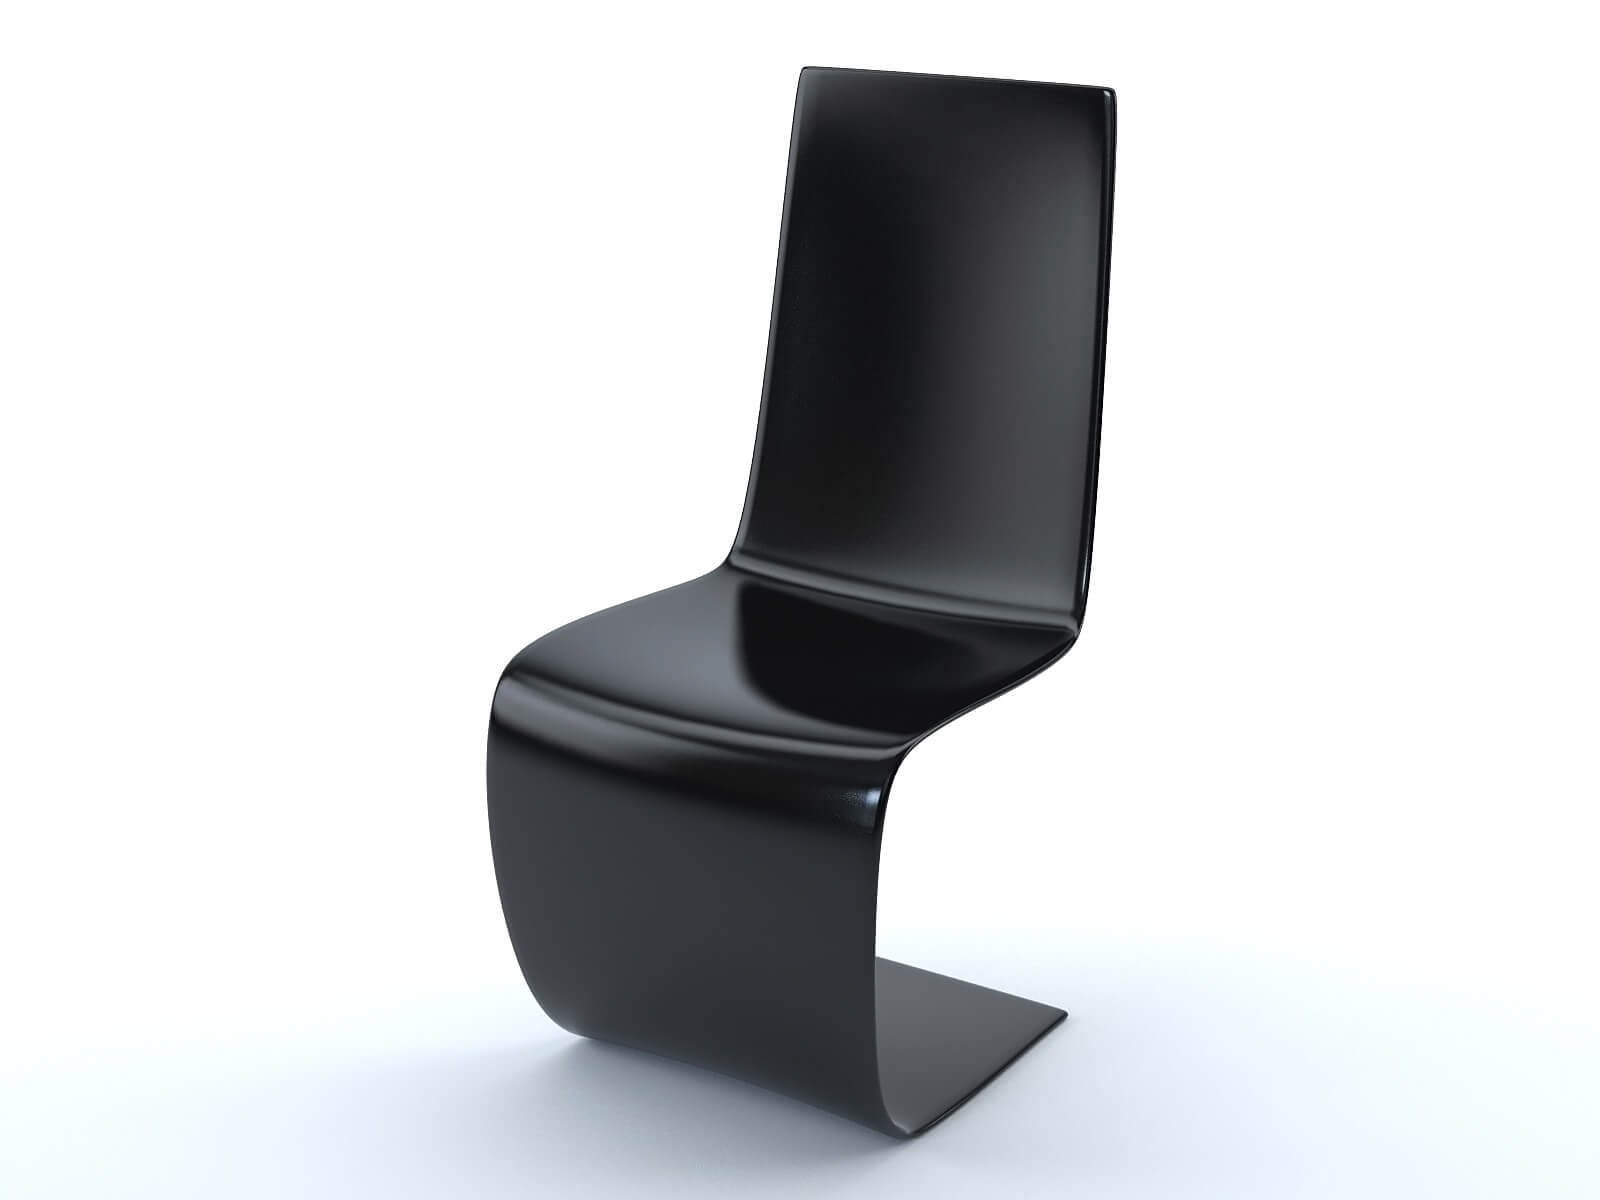 Black S chair